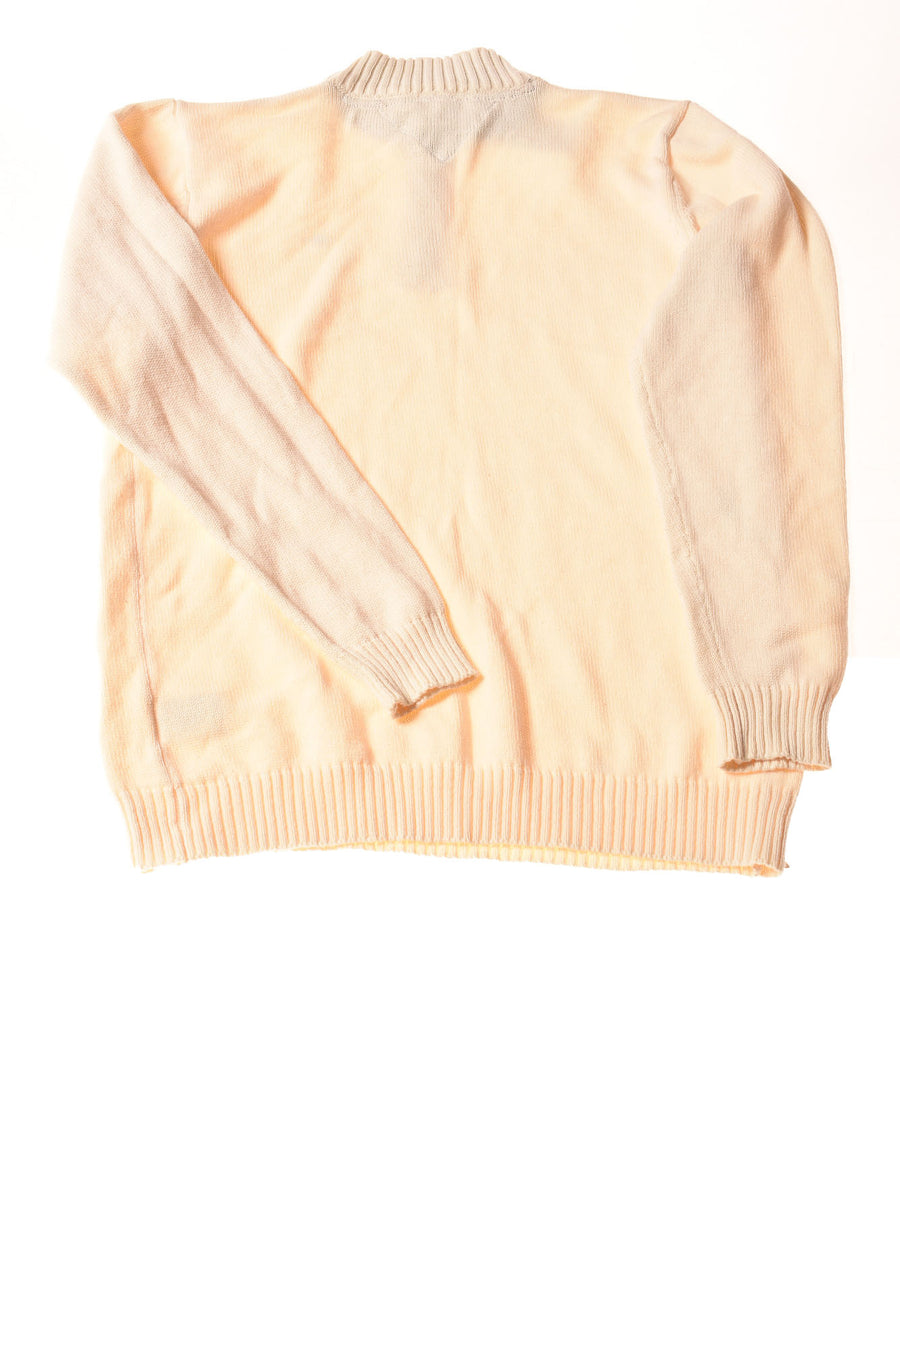 NEW Tommy Hilfiger Boy's Sweater 16/18 Ivory